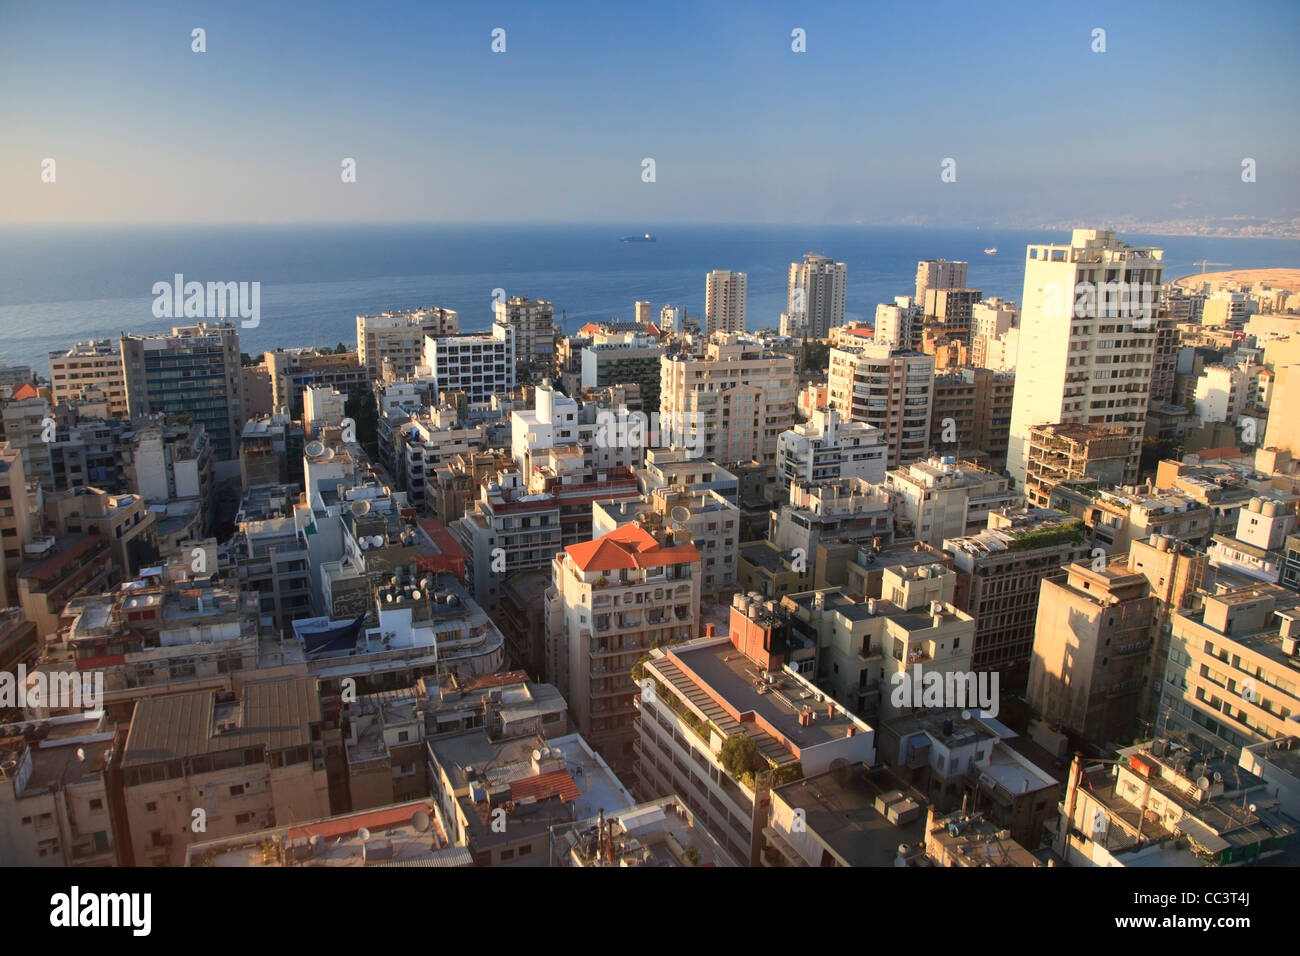 Liban, Beyrouth, vue aérienne Photo Stock